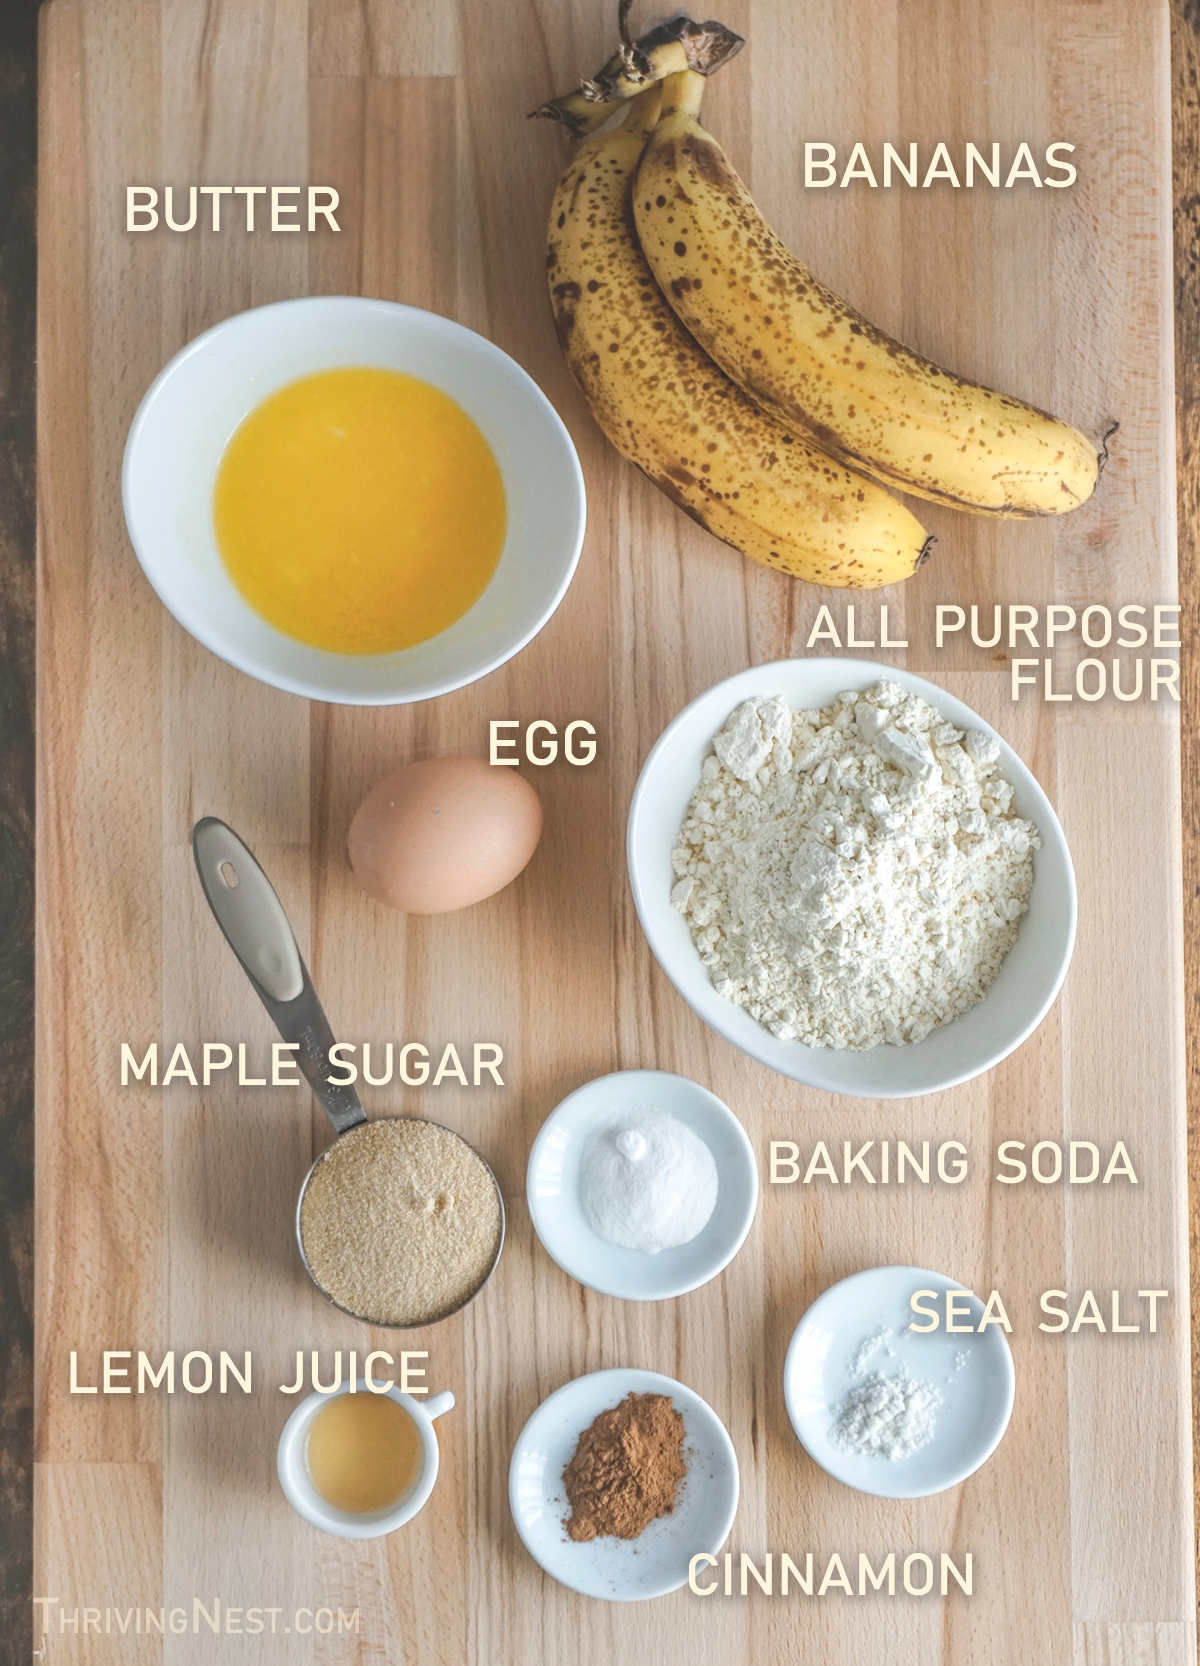 Ingredients for baby banana muffins.